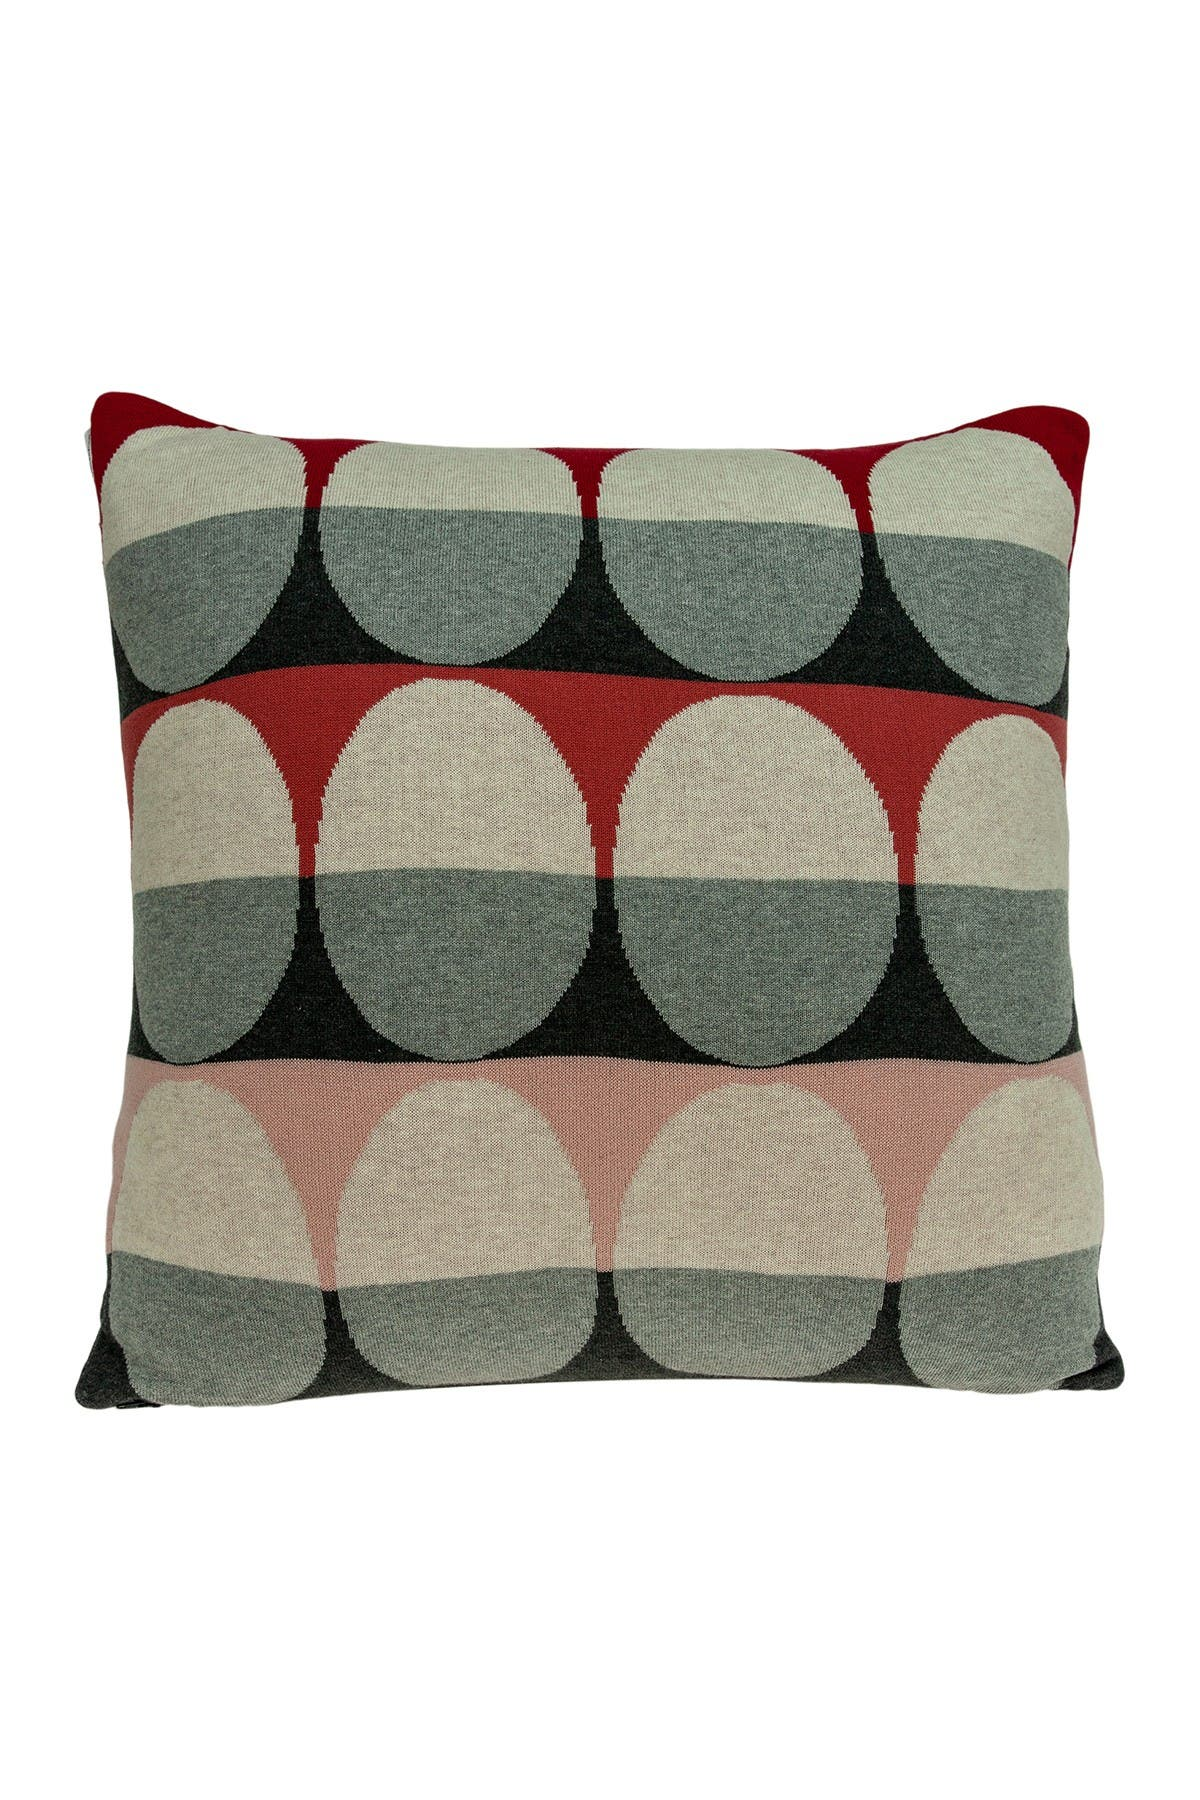 "Image of Parkland Collection Zinca Transitional Pillow - 20"" x 20"" - Multi"